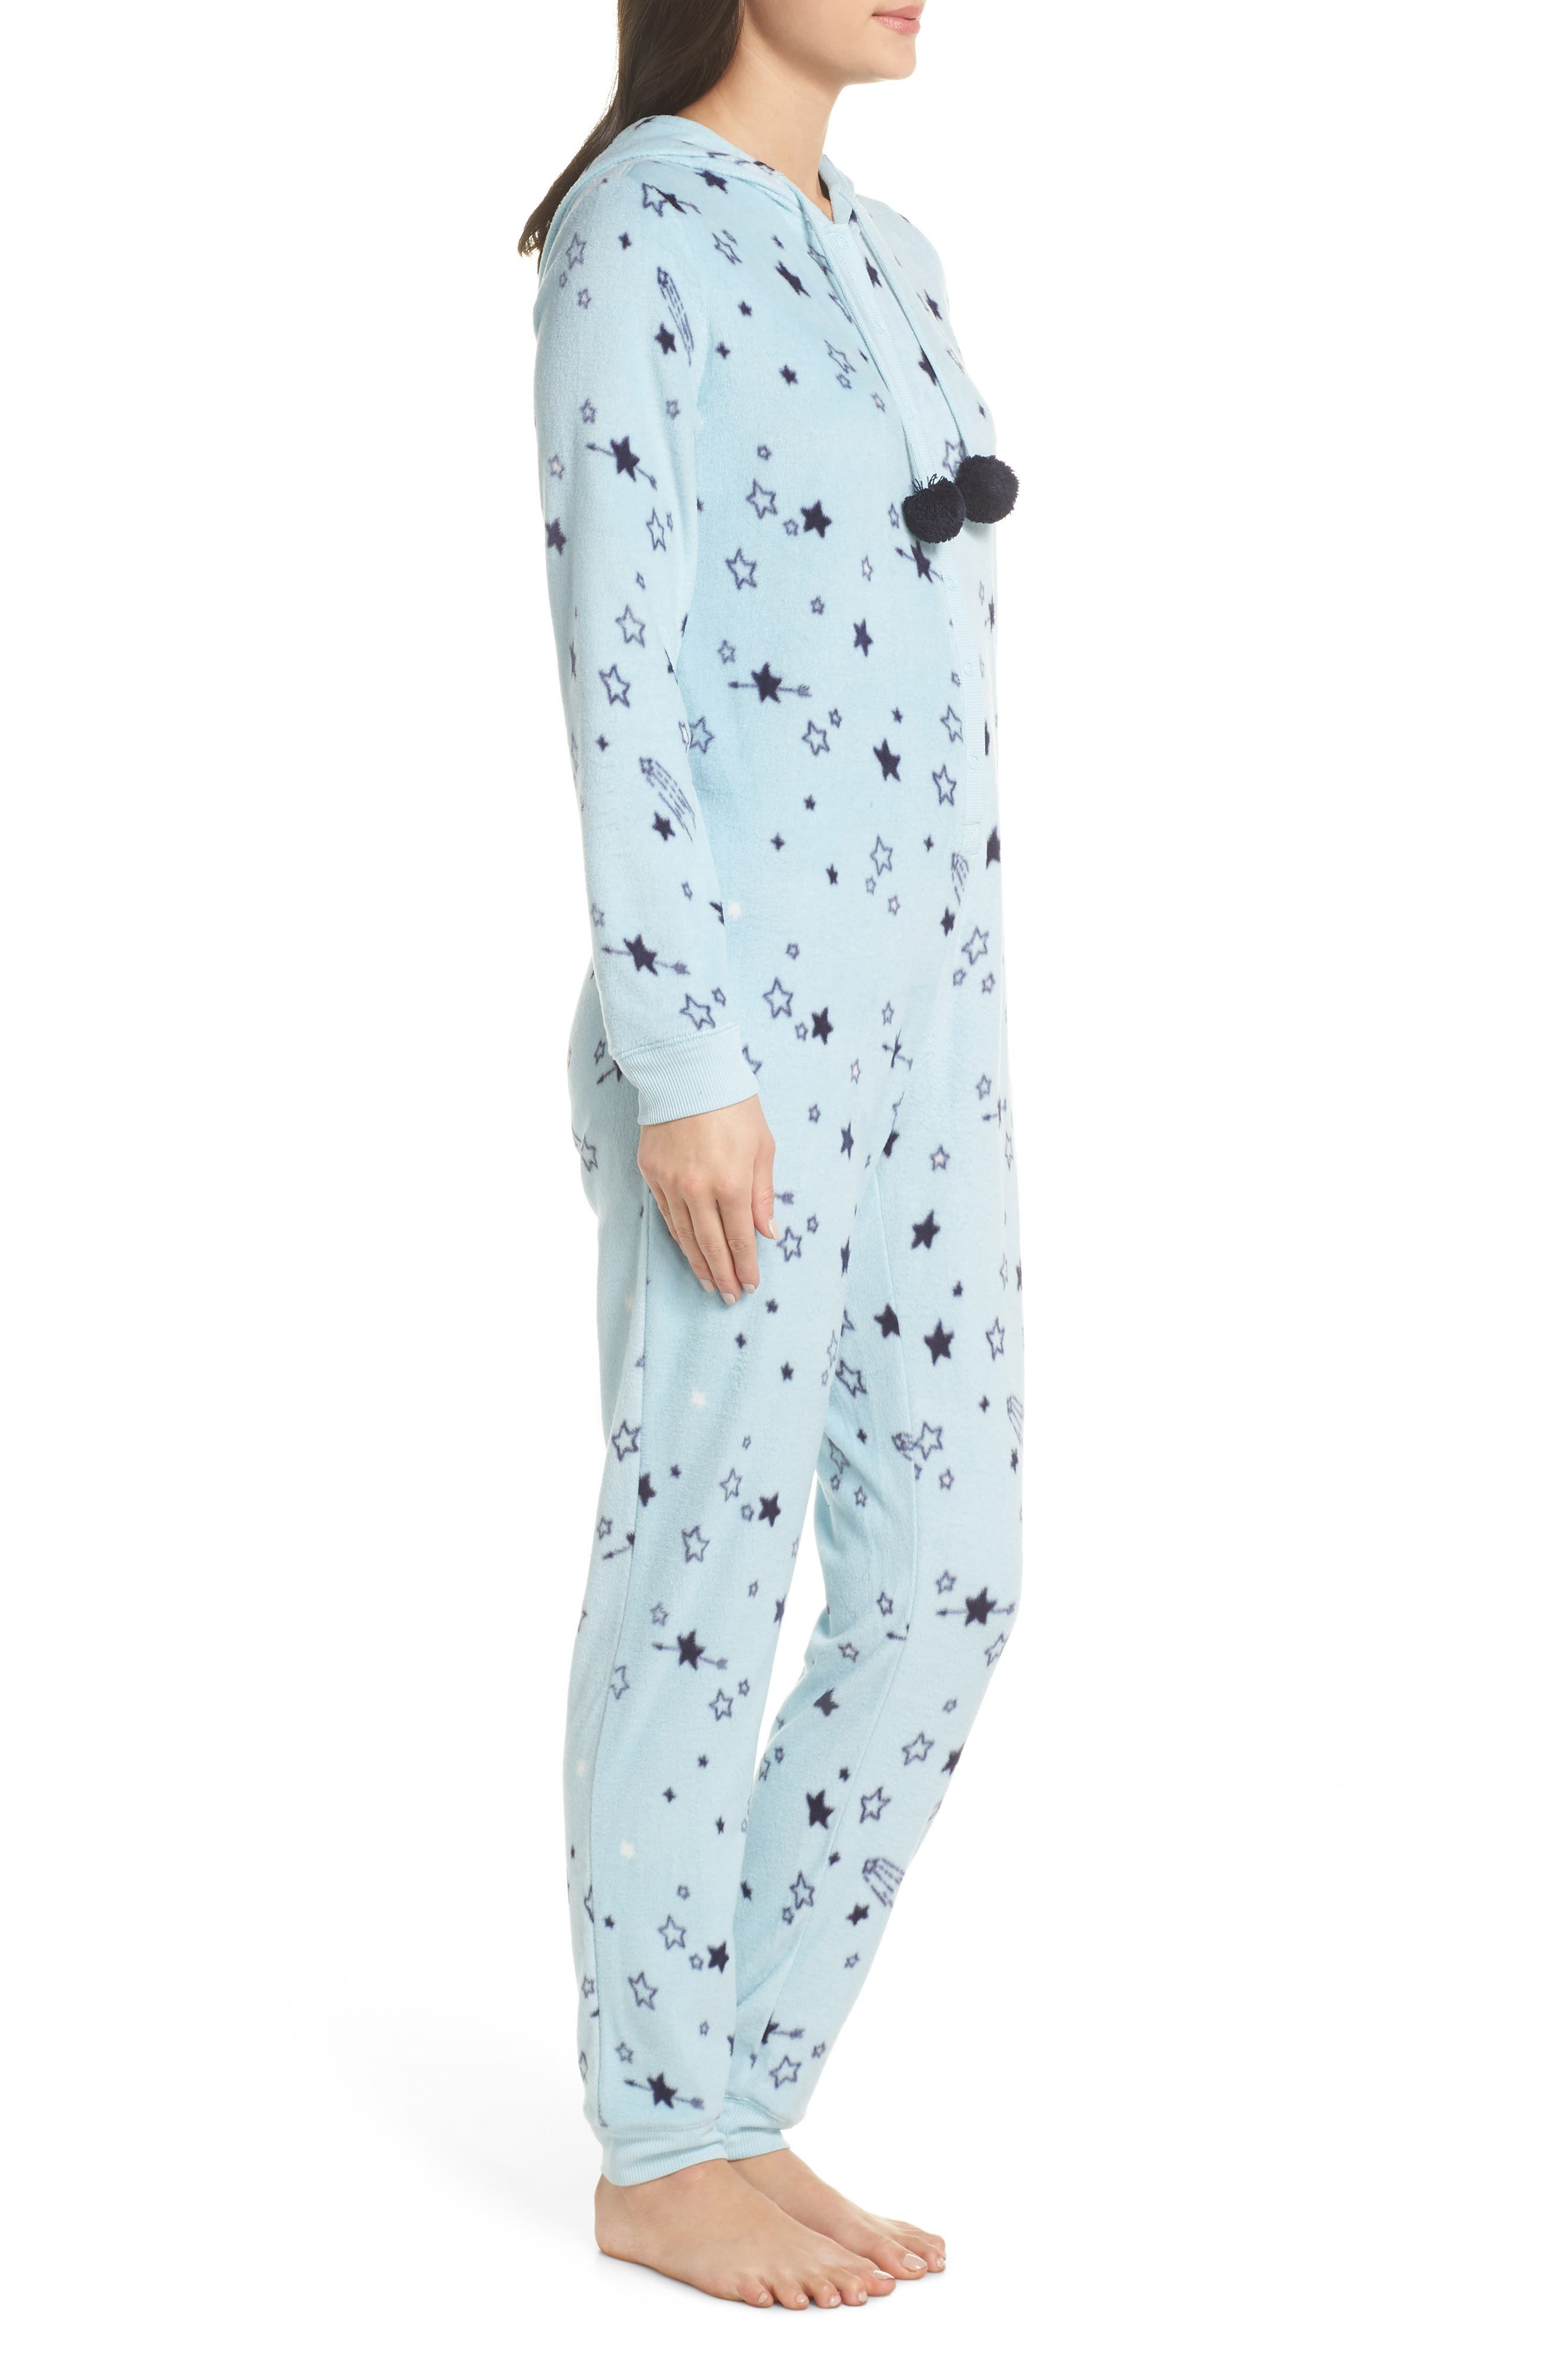 Hooded Pajama Jumpsuit,                             Alternate thumbnail 3, color,                             BLUE OMPHALODES SHOOT 4 STARS